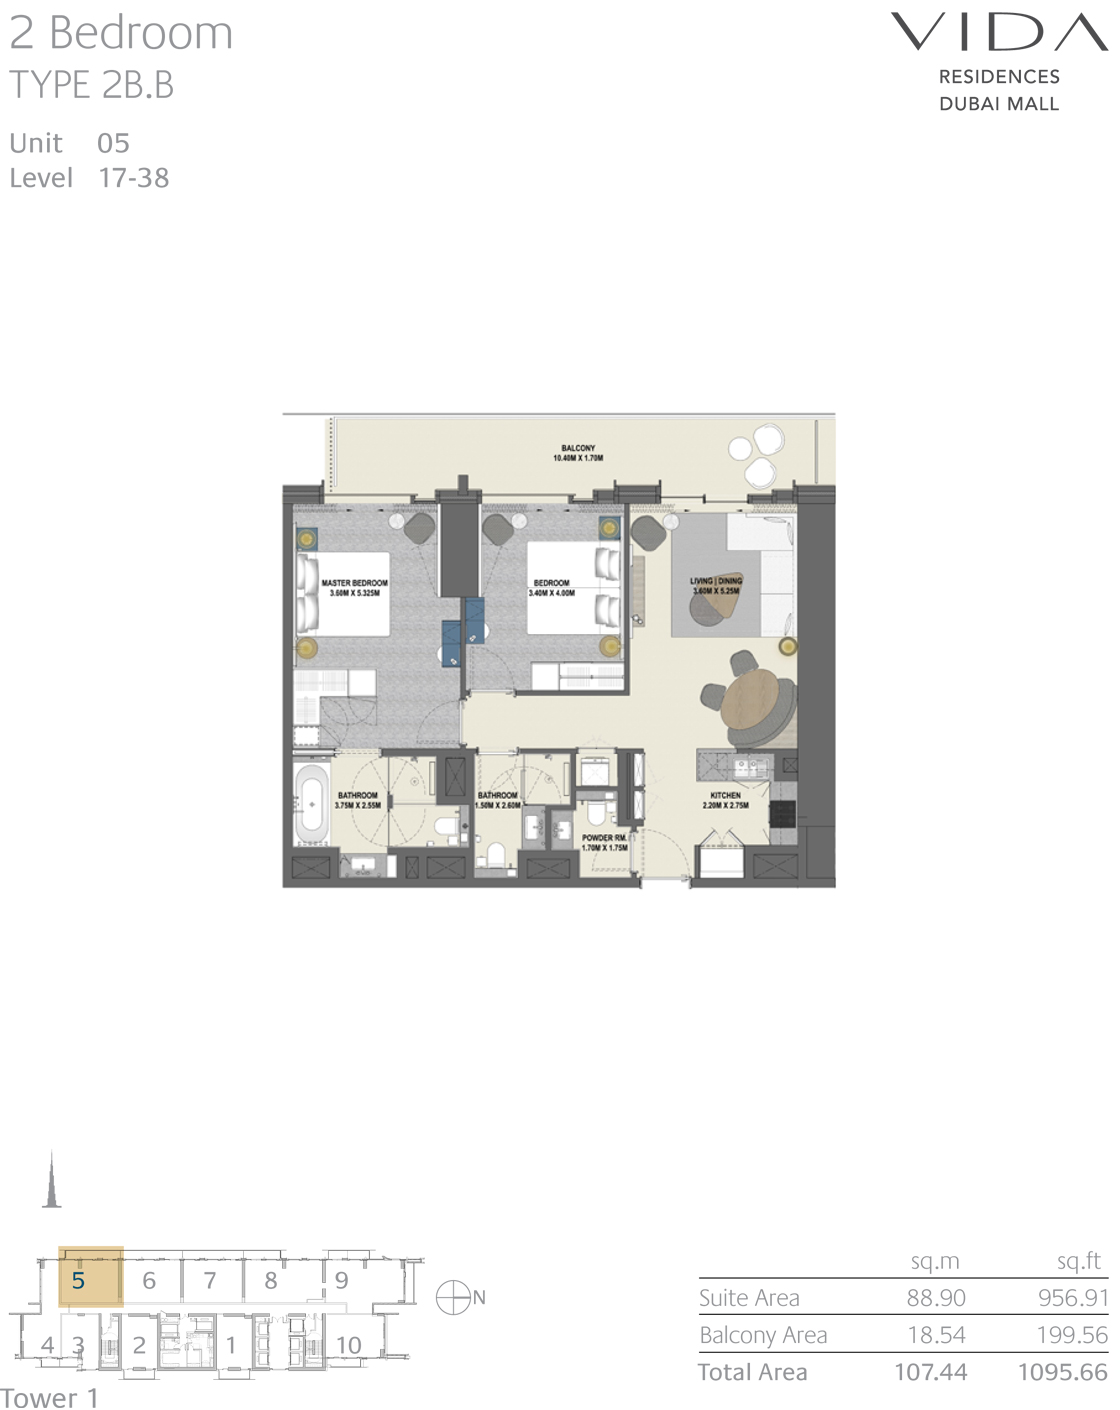 2 Bedroom Type 2B.B Unit 05 Level 17-38